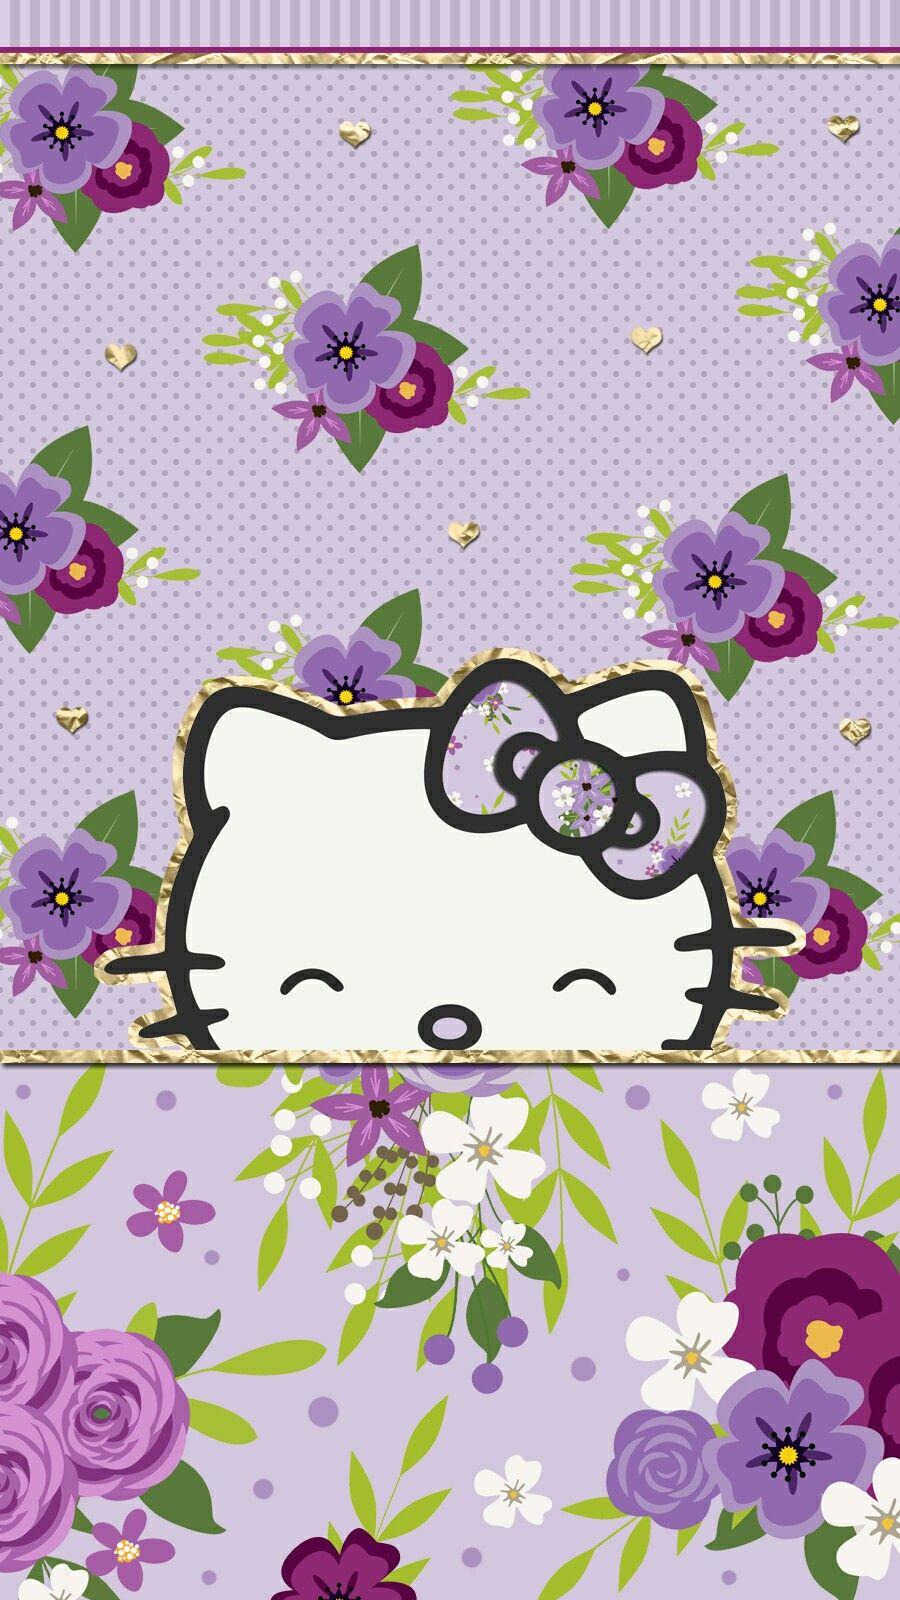 Great Wallpaper Hello Kitty Floral - 620270df9f676c5c7a186b5b8abc2e08  Perfect Image Reference_358183.jpg